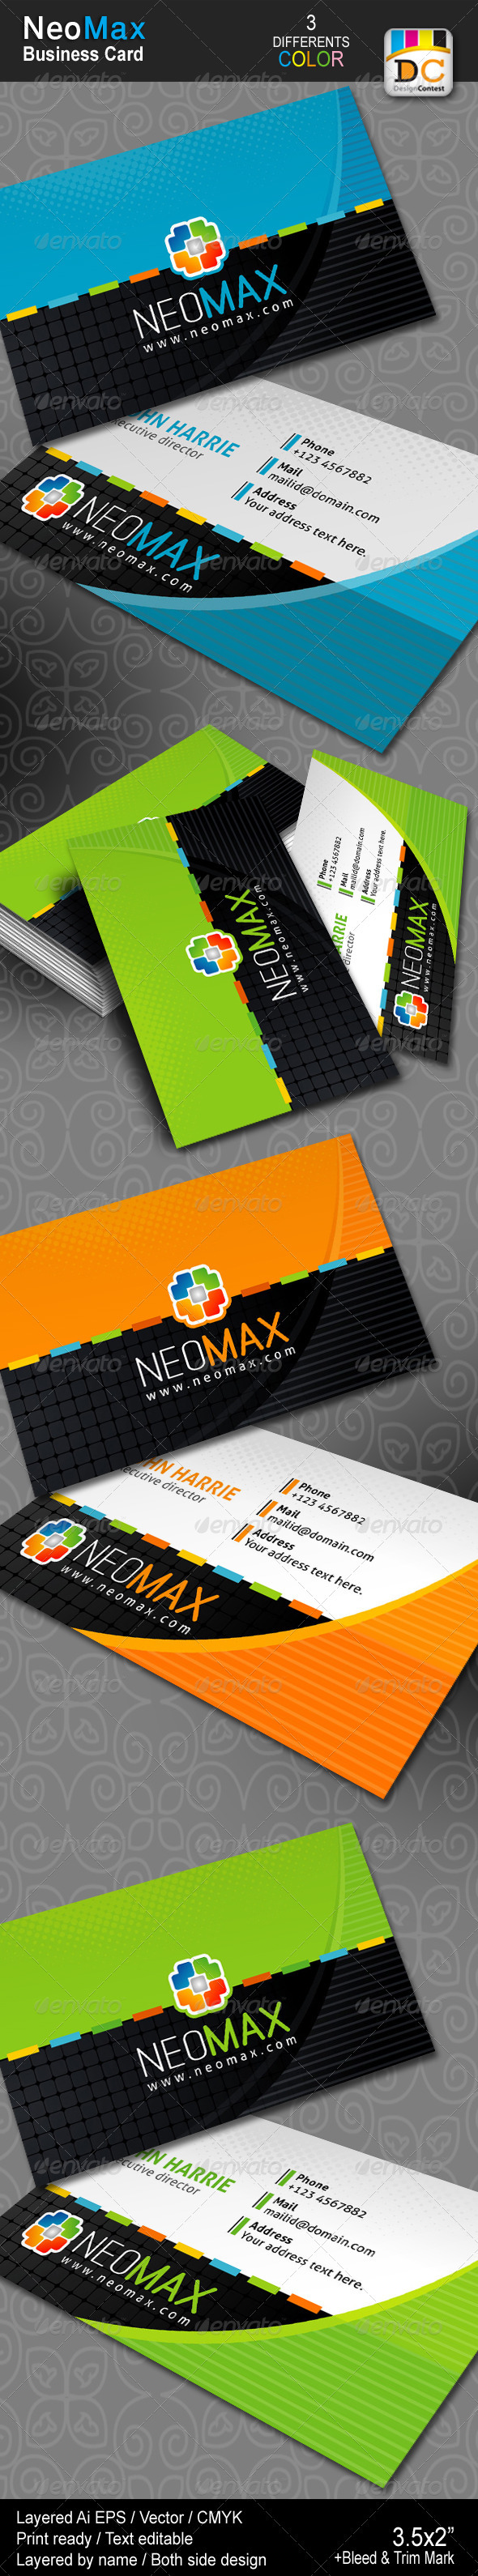 NeoMax Business Cards - Creative Business Cards